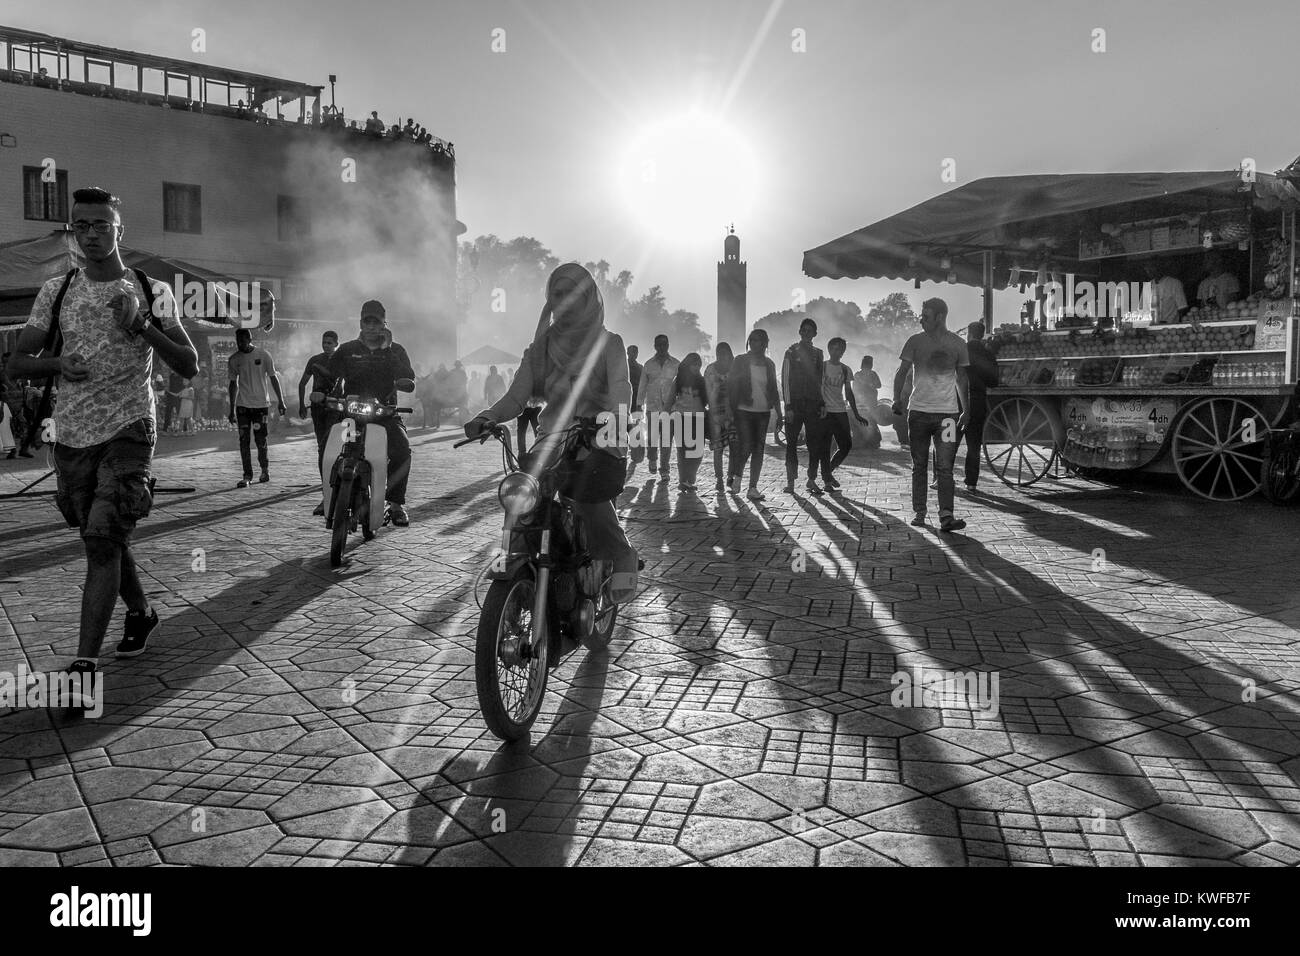 Street scene with people and dramatic light in Jemaa el Fna, The Square. - Stock Image